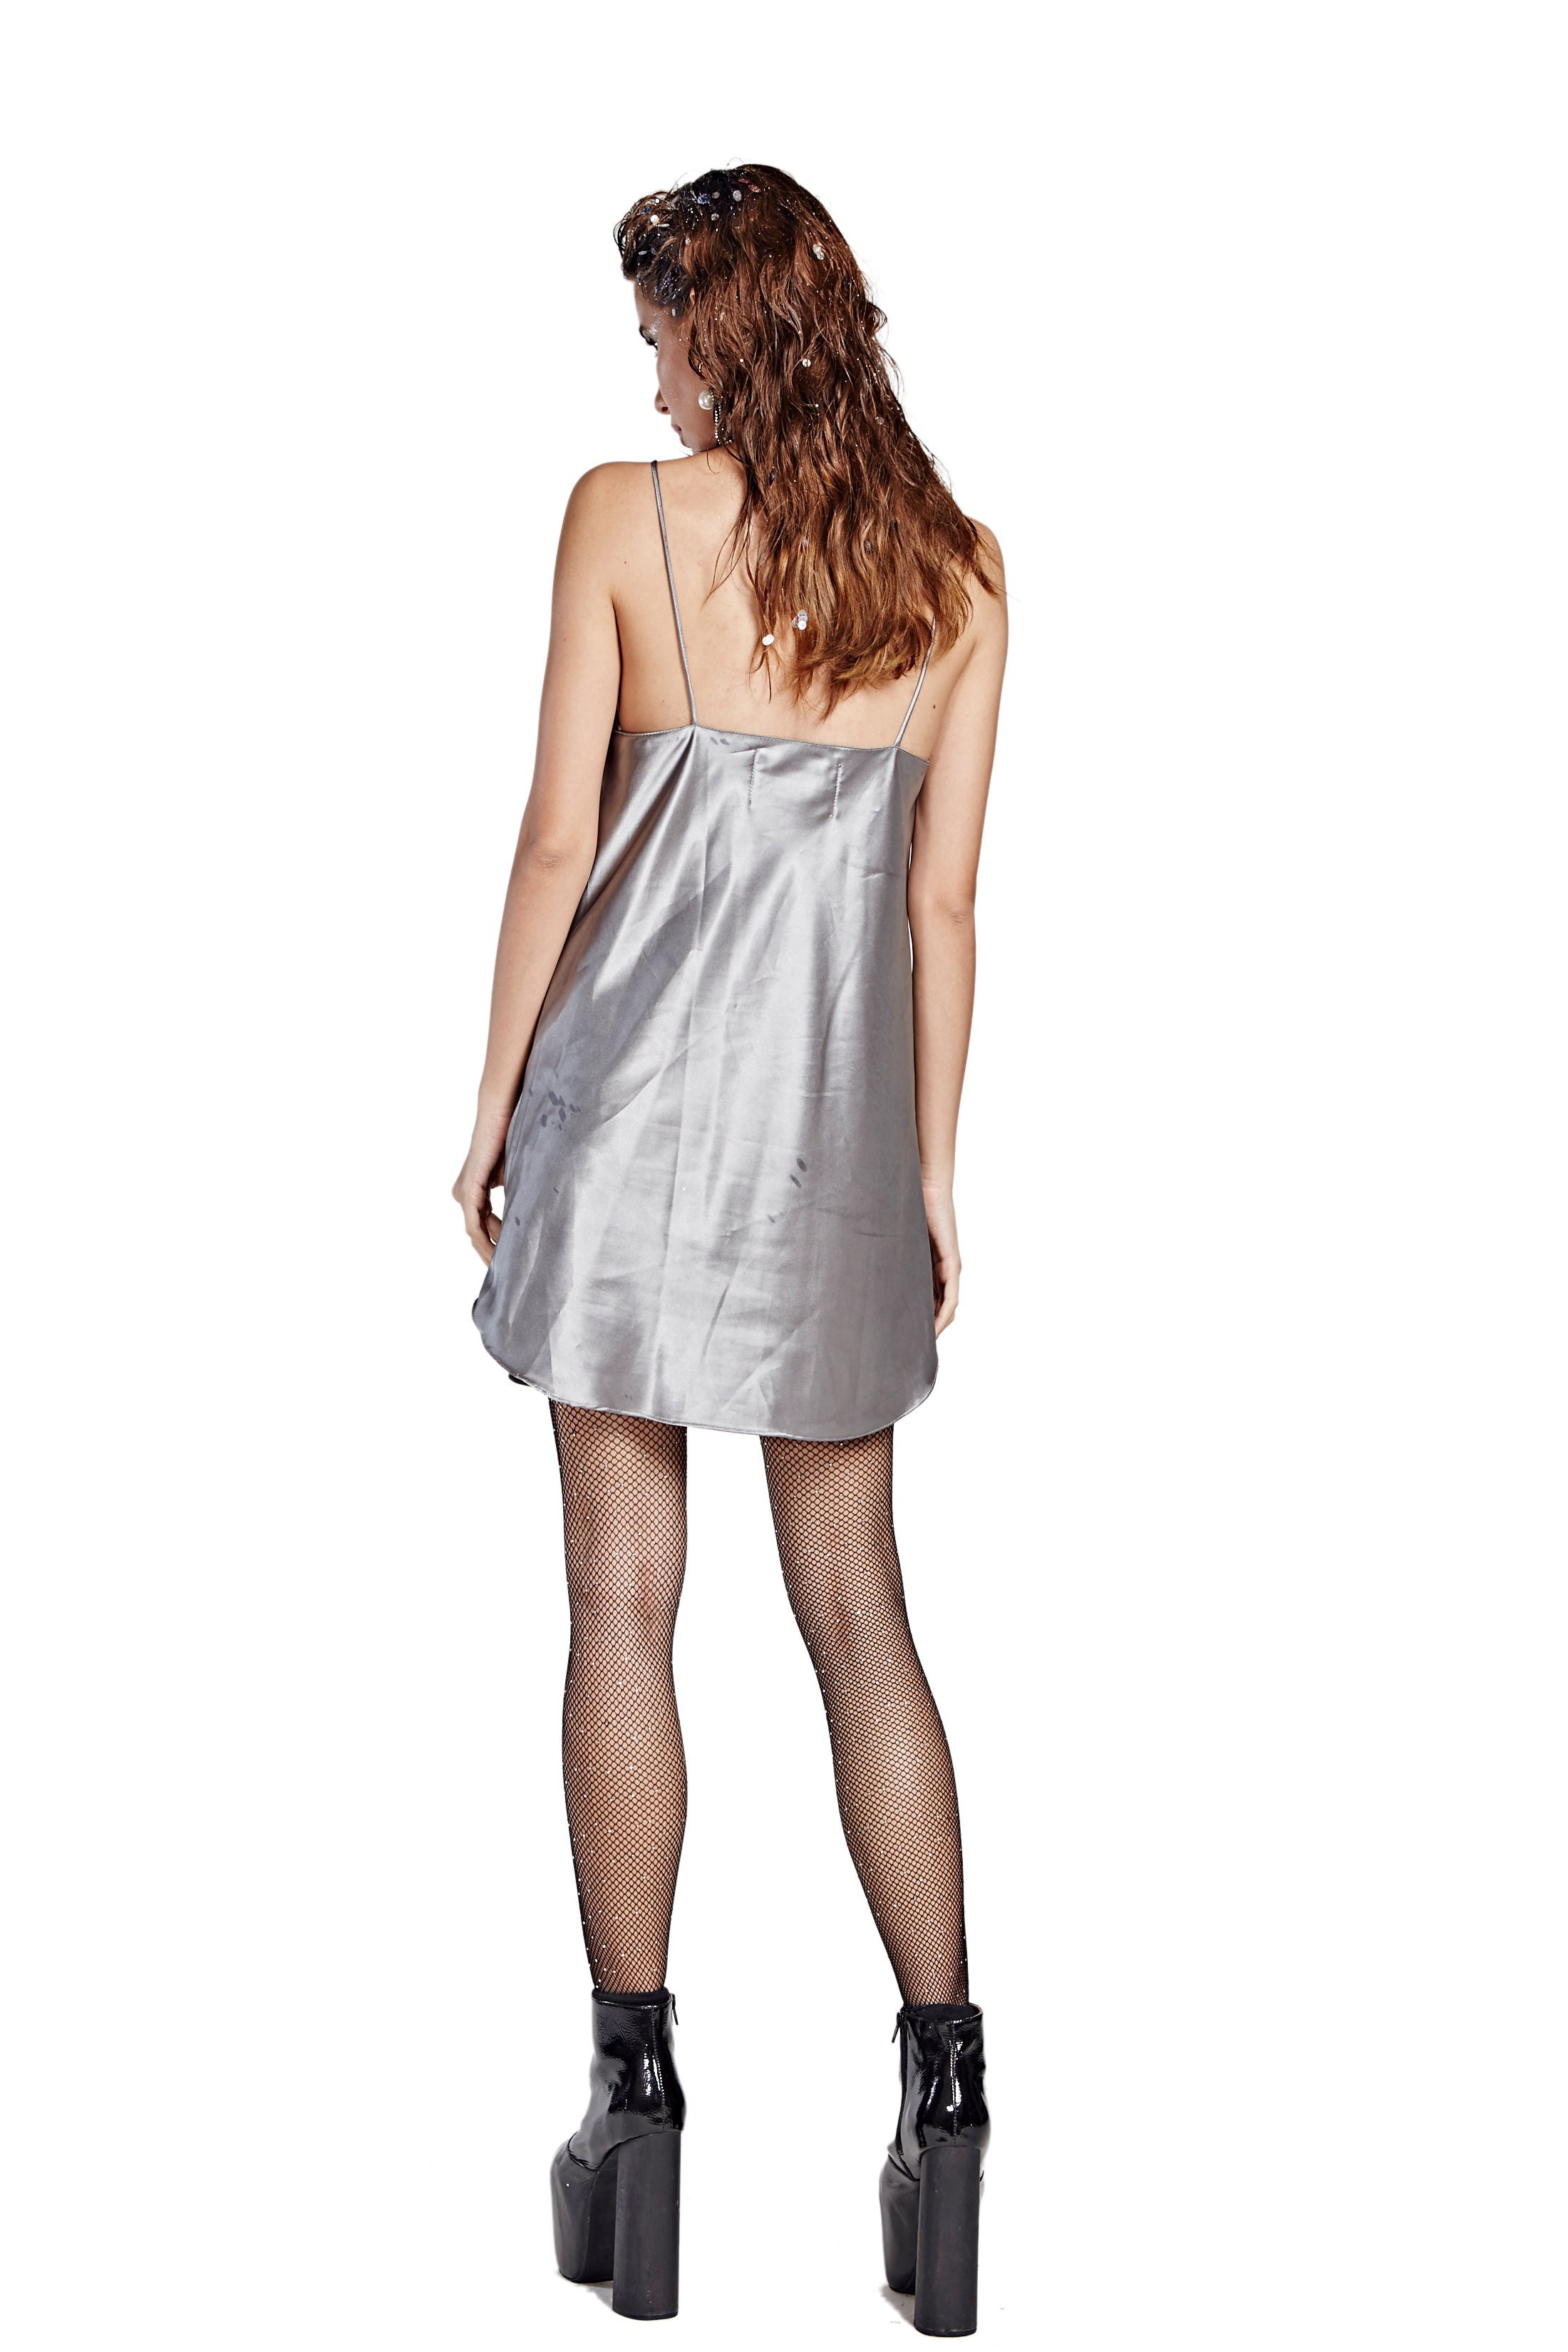 Sleep With Me Night Gown - Gray